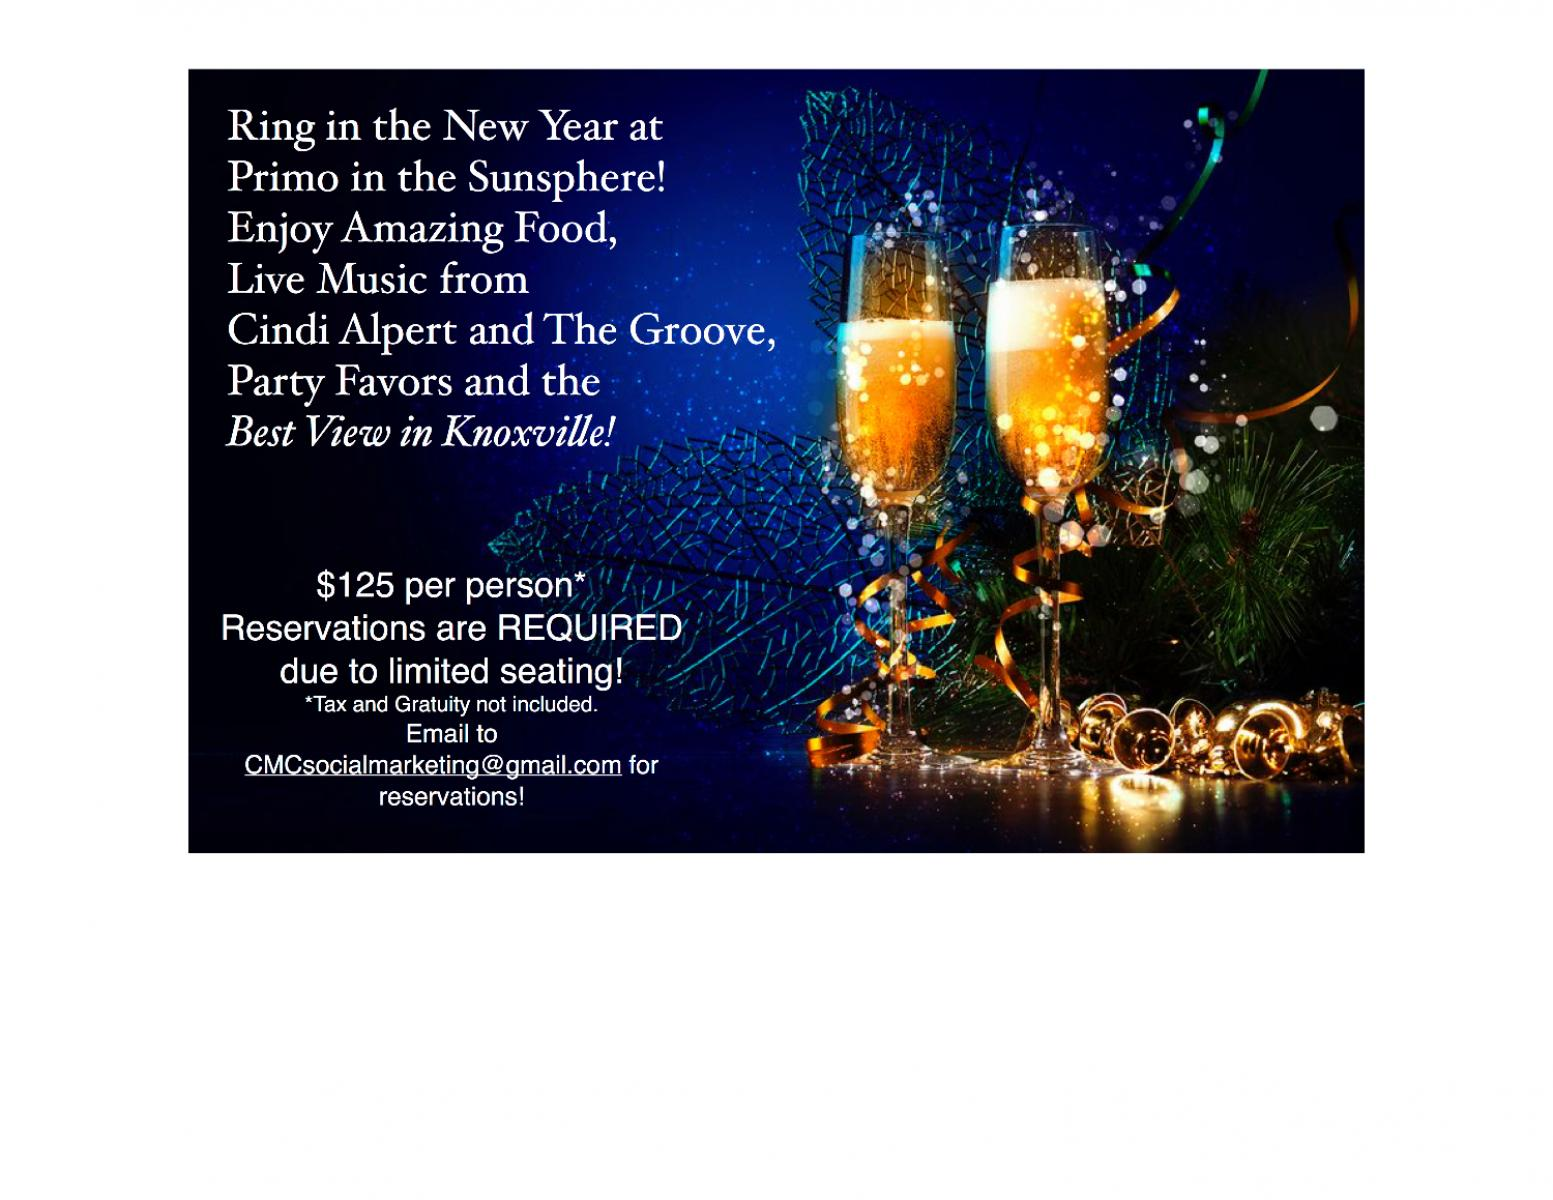 New Year's Eve Dinner, Knoxville TN - Dec 31, 2016 - 5:00 PM